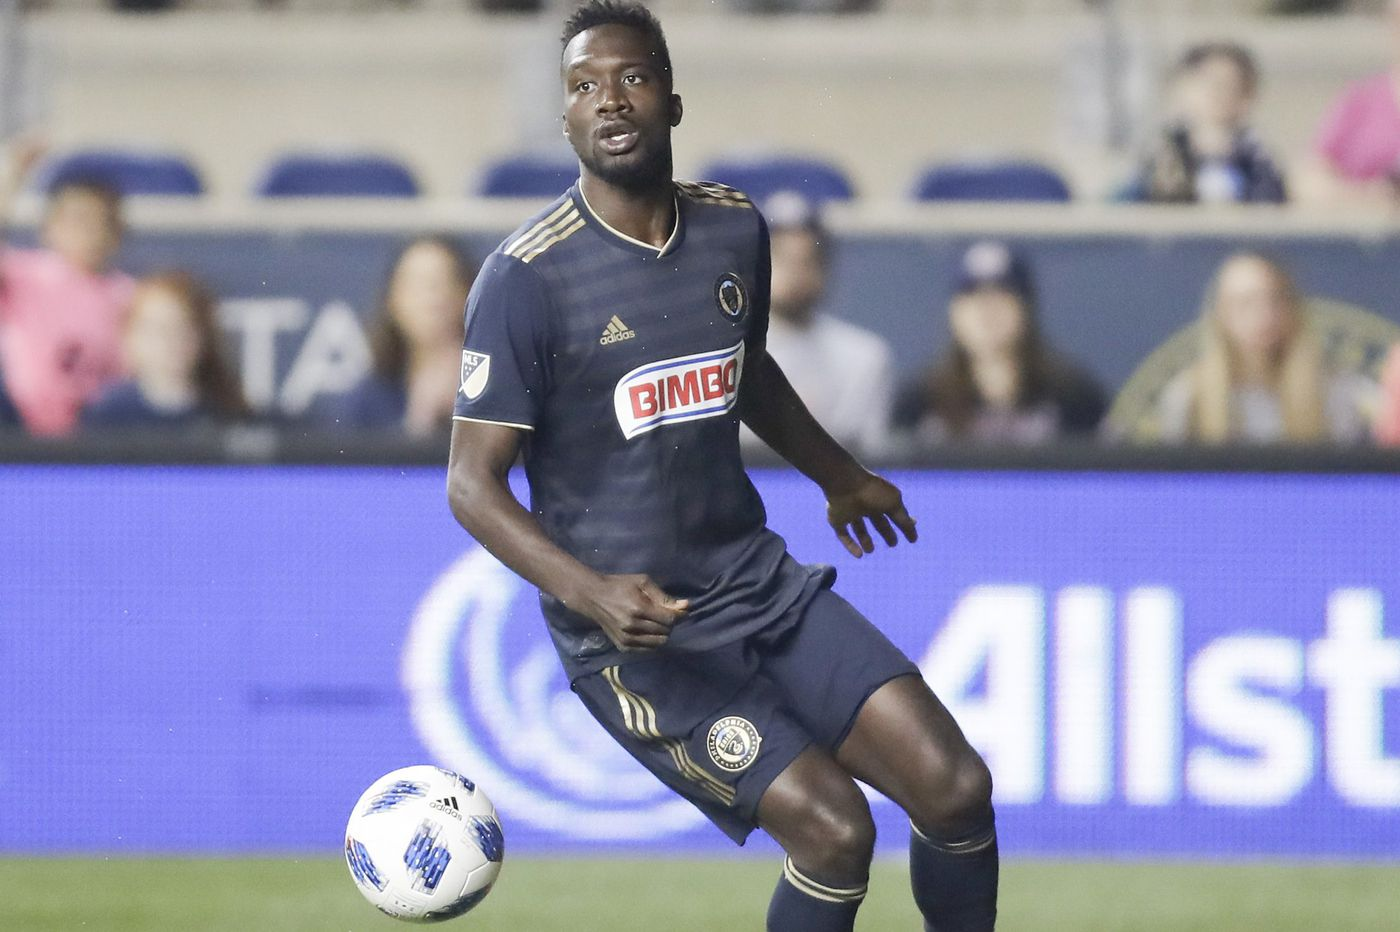 Union lose, 2-0, to Atlanta United as C.J. Sapong's goal drought continues